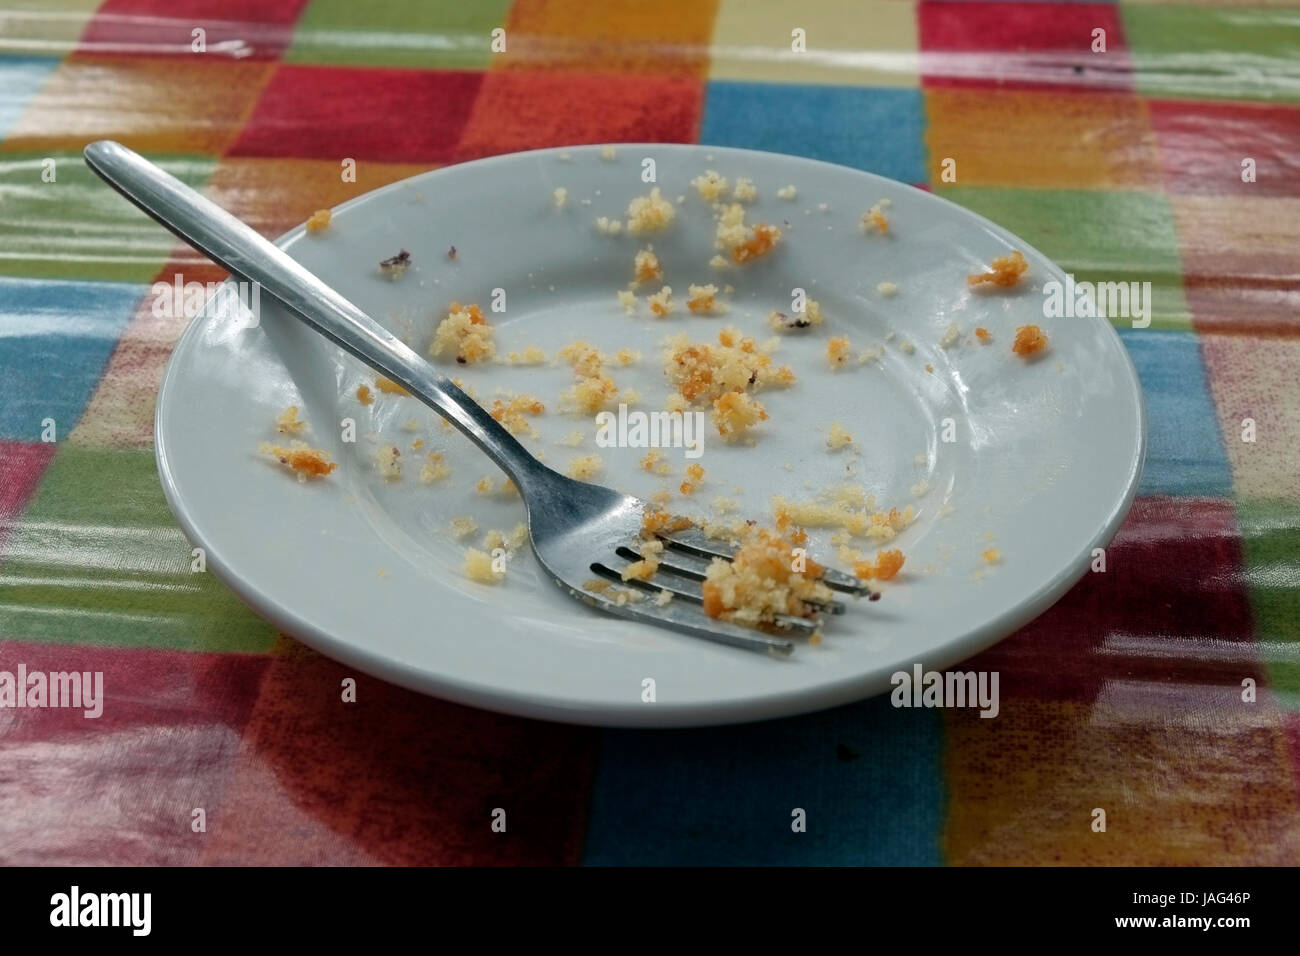 An empty small side plate with a fork and the crumbs left from a cake that has been eaten, sitting on a shiny tablecloth - Stock Image